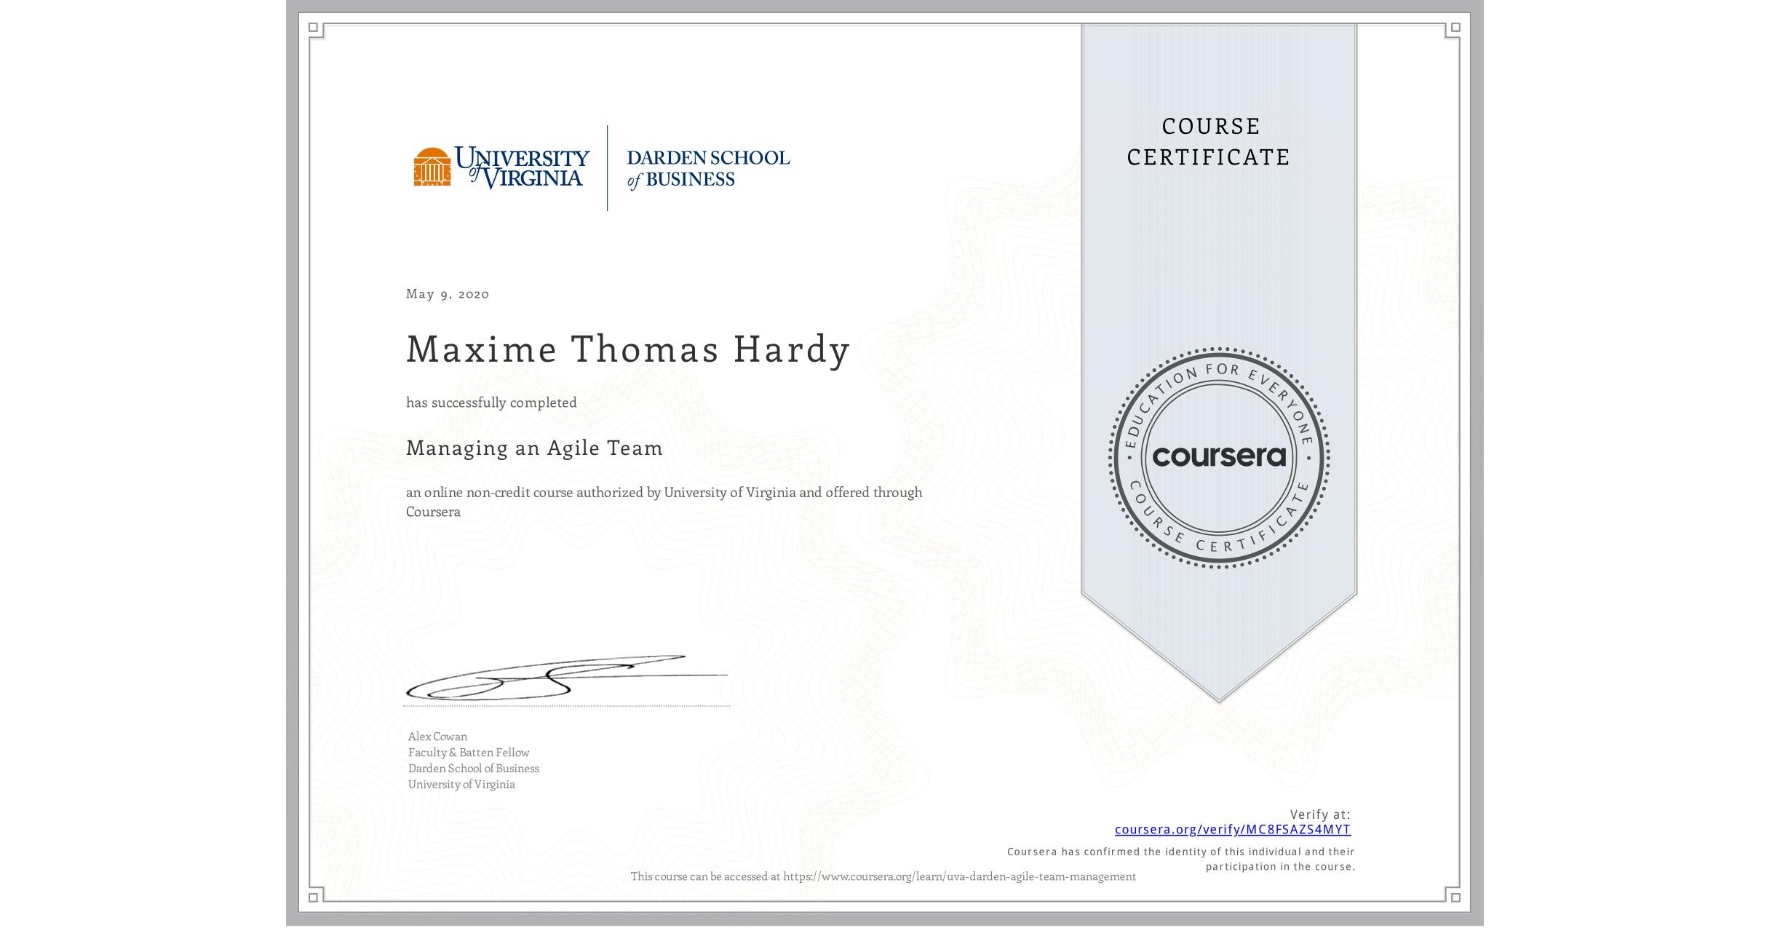 View certificate for Maxime Thomas Hardy, Managing an Agile Team, an online non-credit course authorized by University of Virginia and offered through Coursera